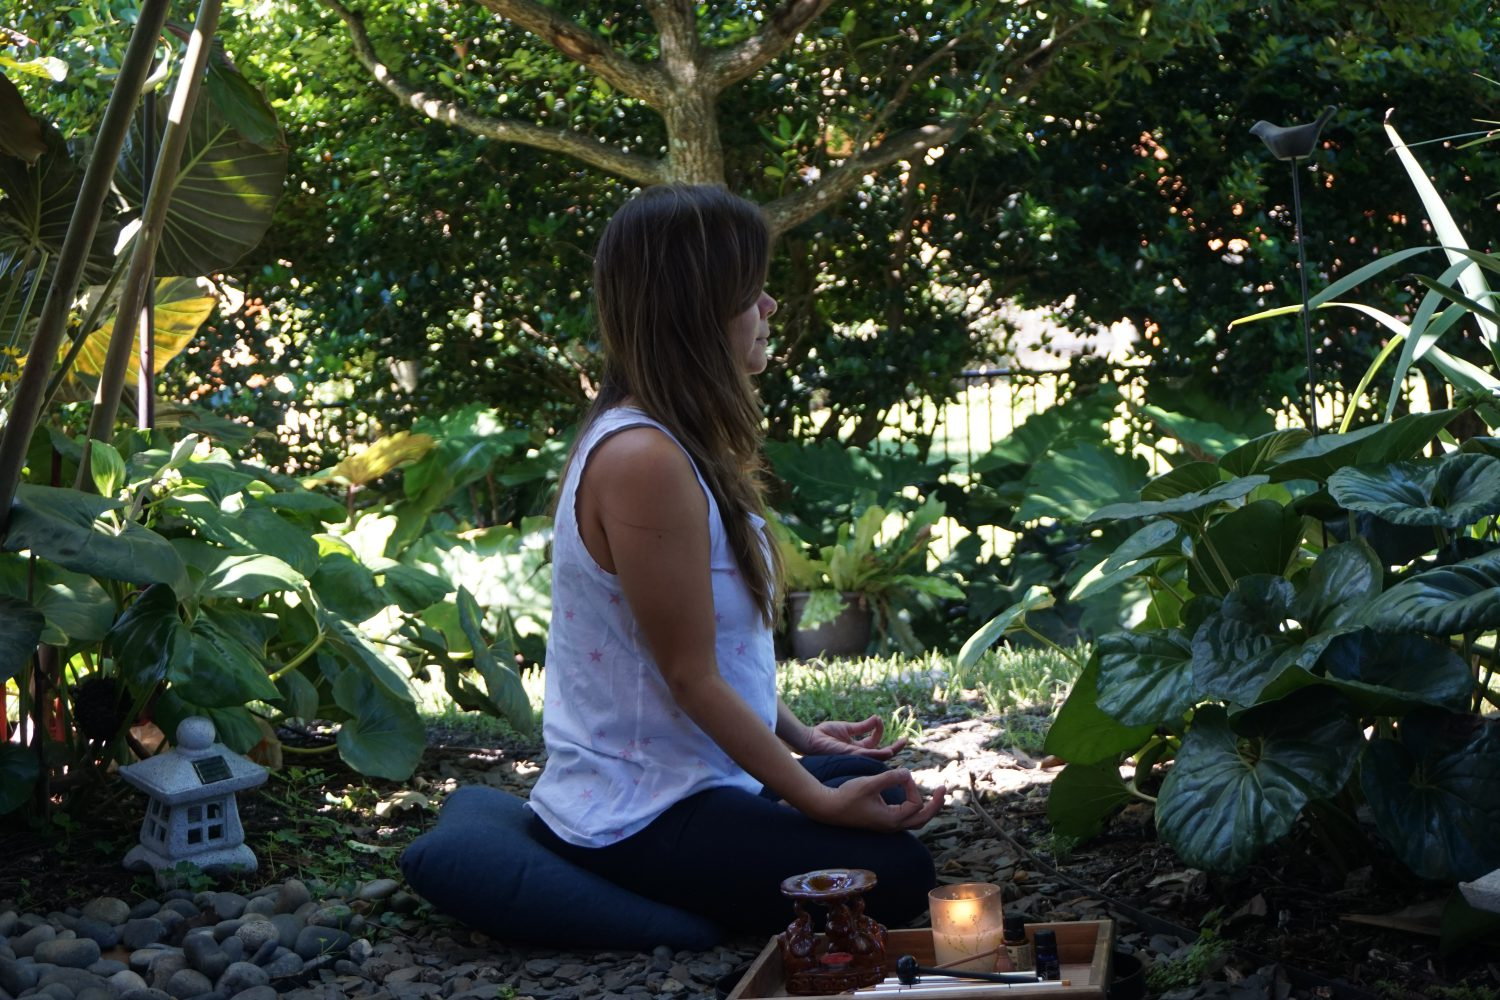 How to get started on a Meditation Practice